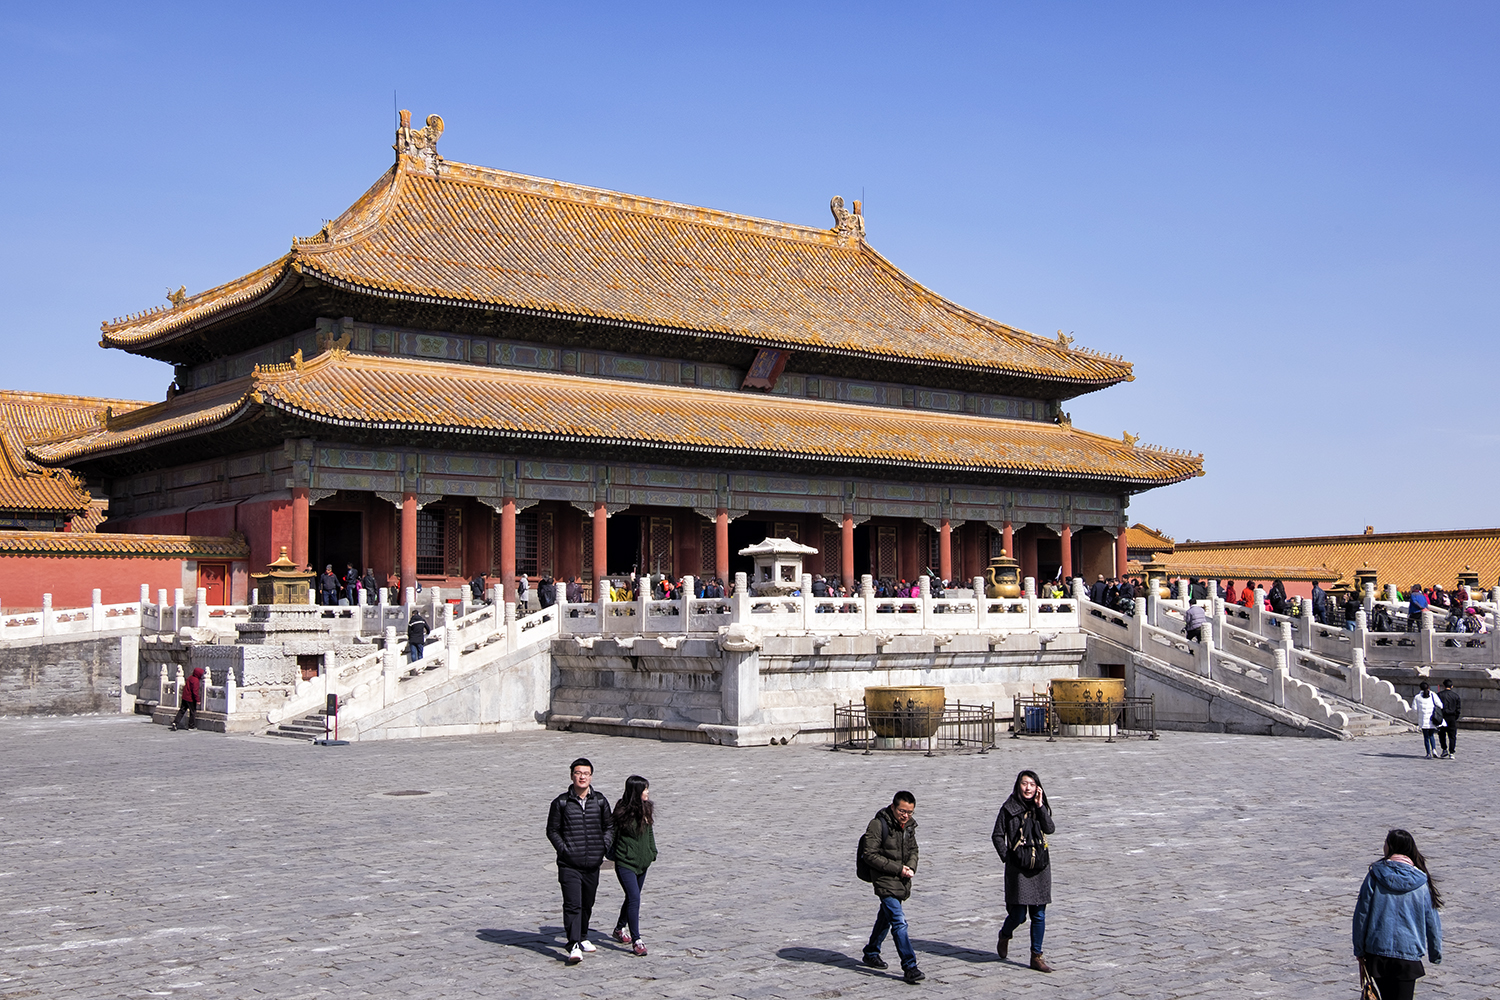 The Palace of Heavenly Purity, in the Forbidden City